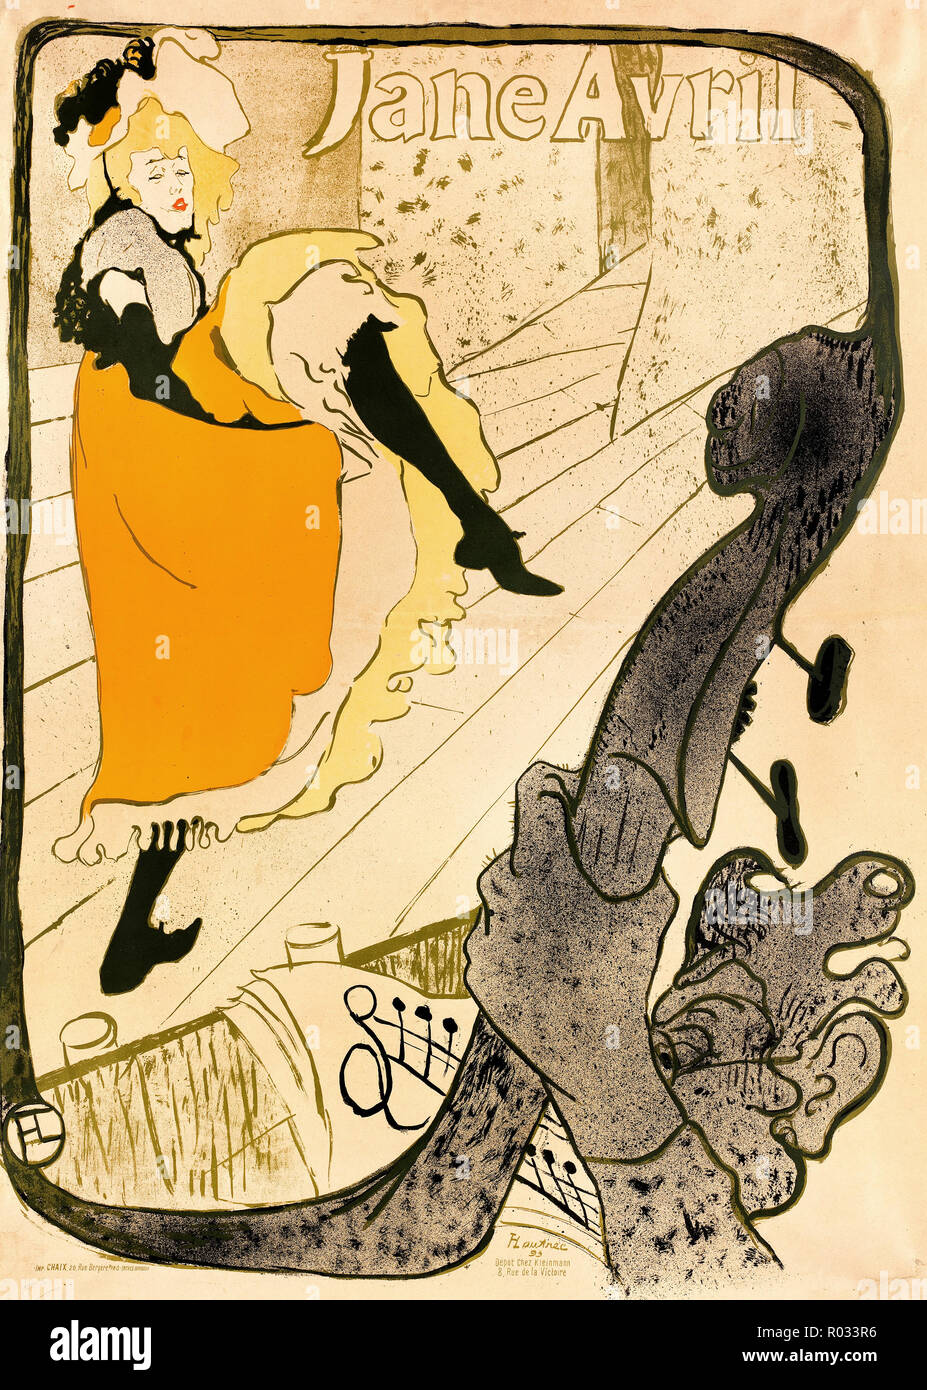 Henri de Toulouse-Lautrec, Jane Avril 1893 litografía en color, el Museo de Bellas Artes de Boston, EE.UU.. Foto de stock